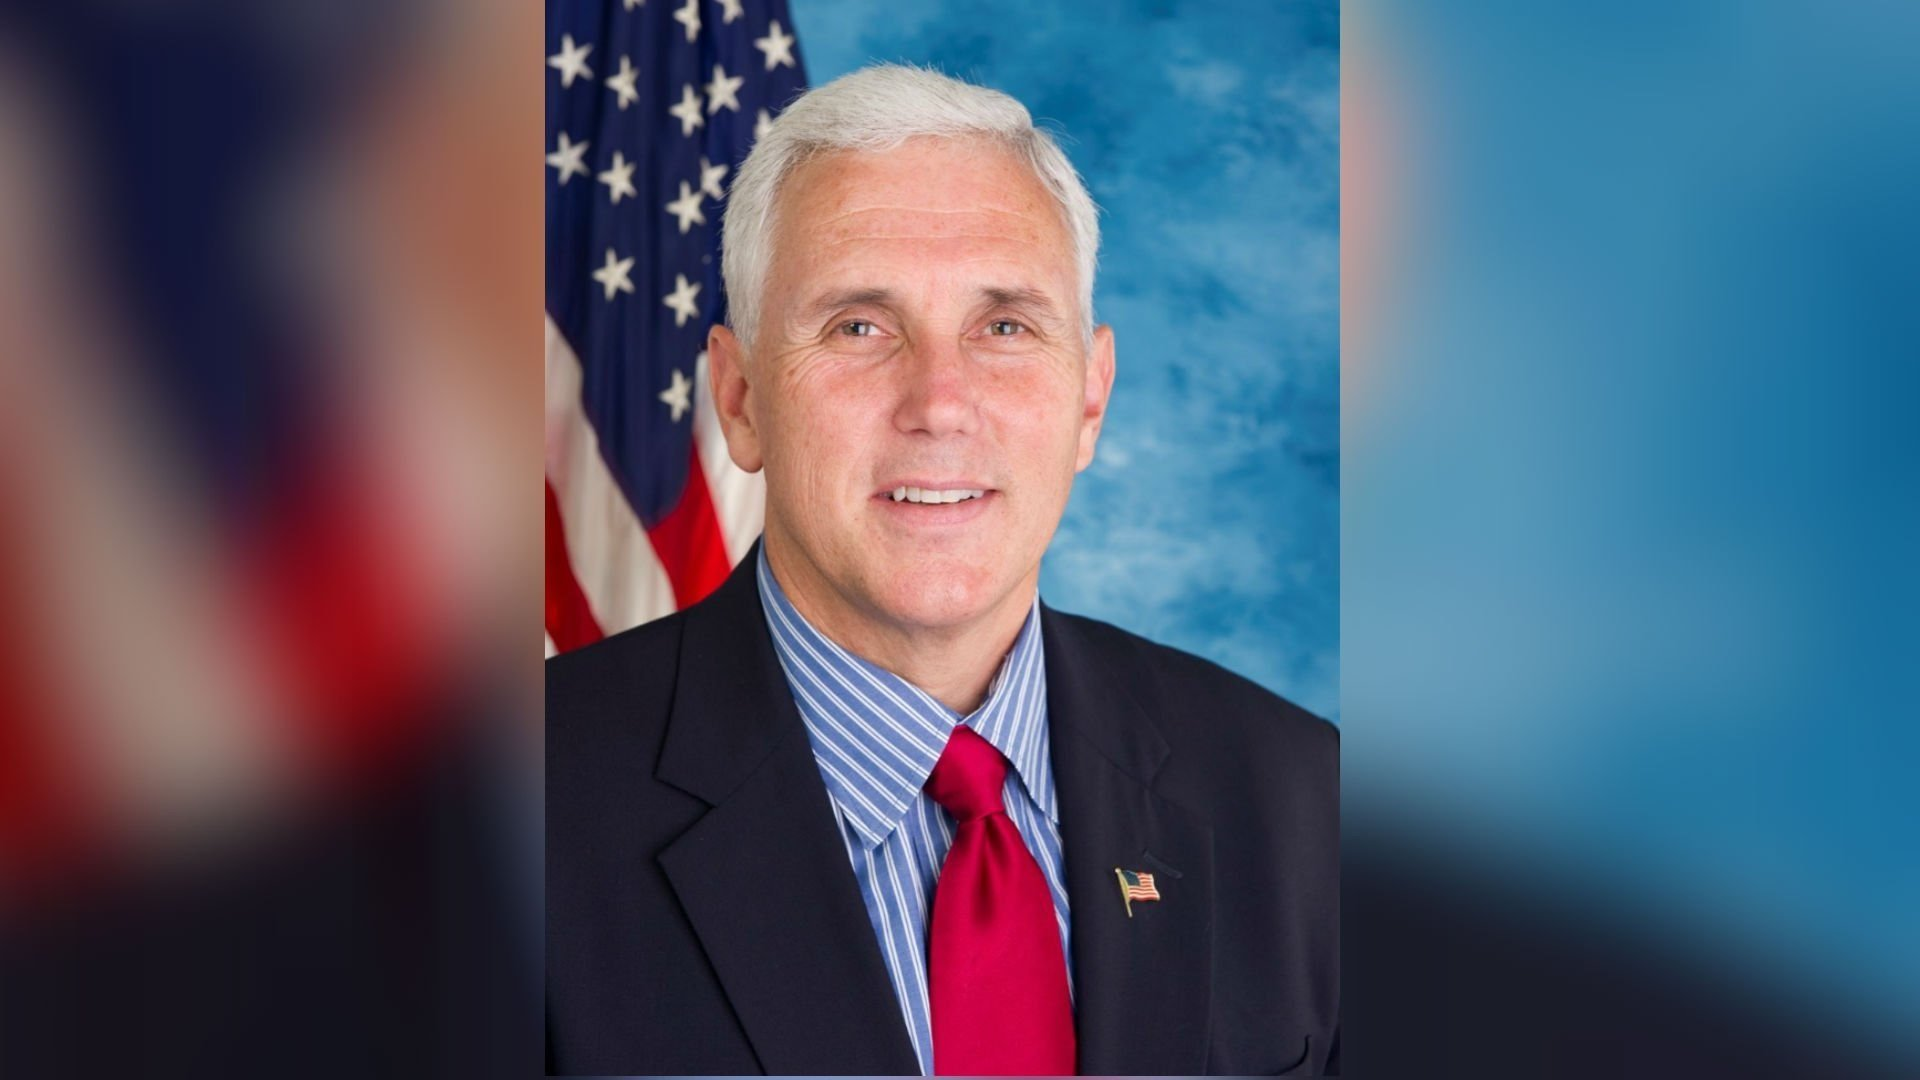 Not so fast, Mr. Vice President: Boy tapped in face demands apology